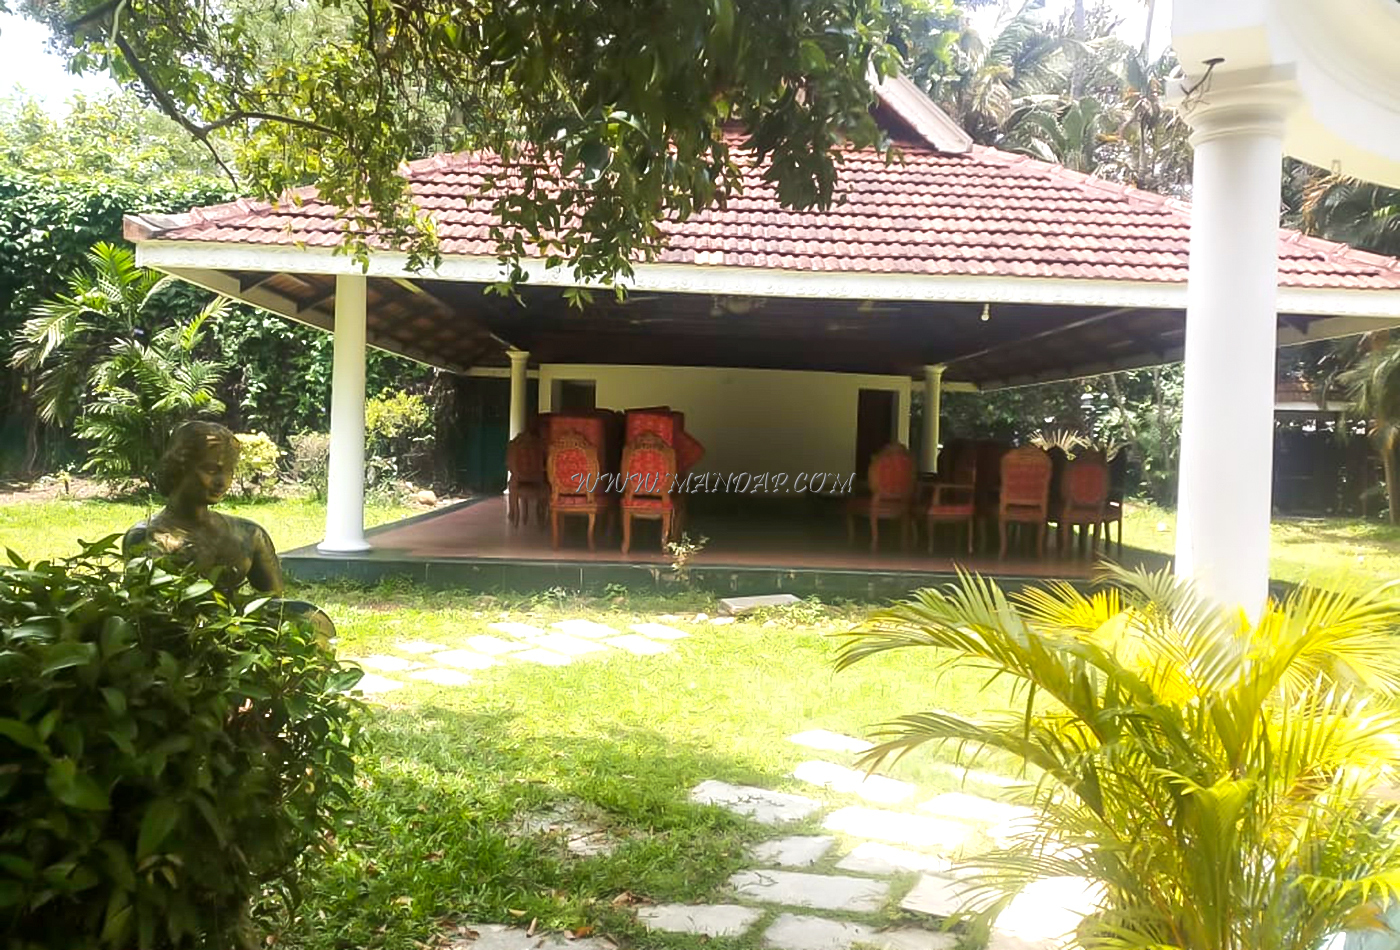 Find the availability of the Park Rajadhani Open Lawn in Pattom, Trivandrum and avail special offers